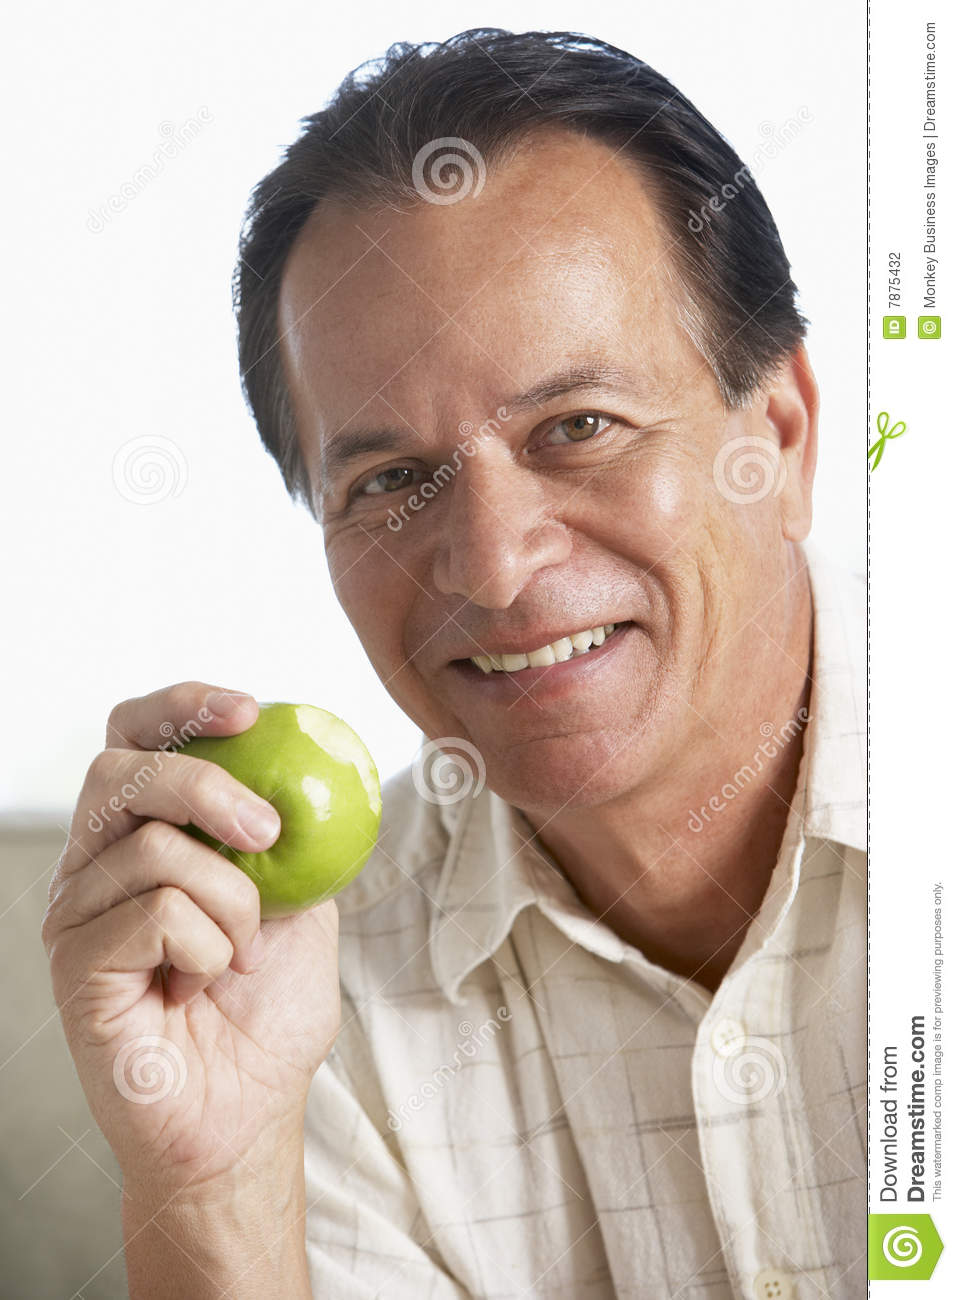 Middle Aged Man Eating Green Apple And Smiling